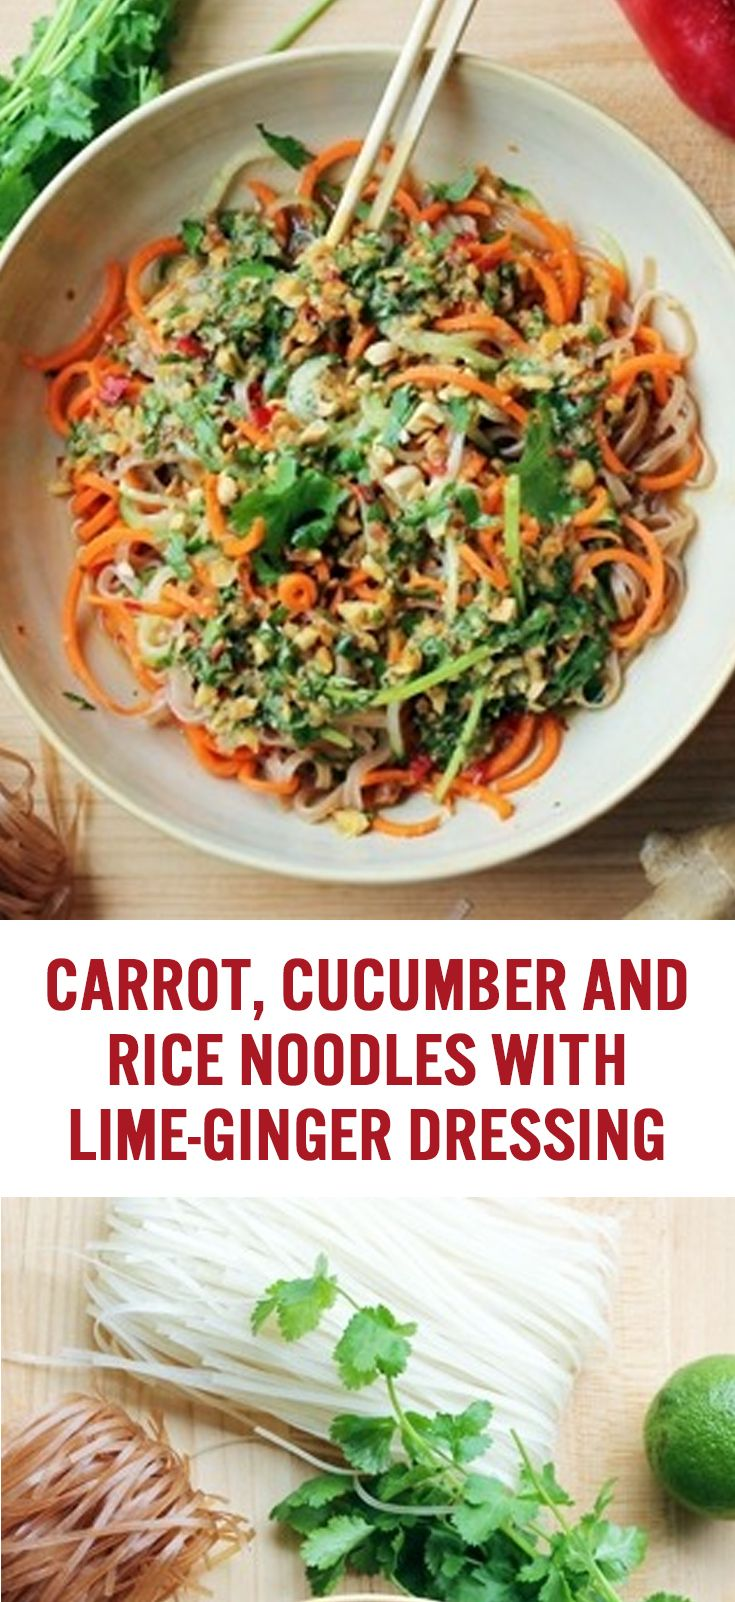 Bobby Flay's Carrot, Cucumber and Rice Noodles with Lime Ginger Dressing Recipe | Asian Cooking